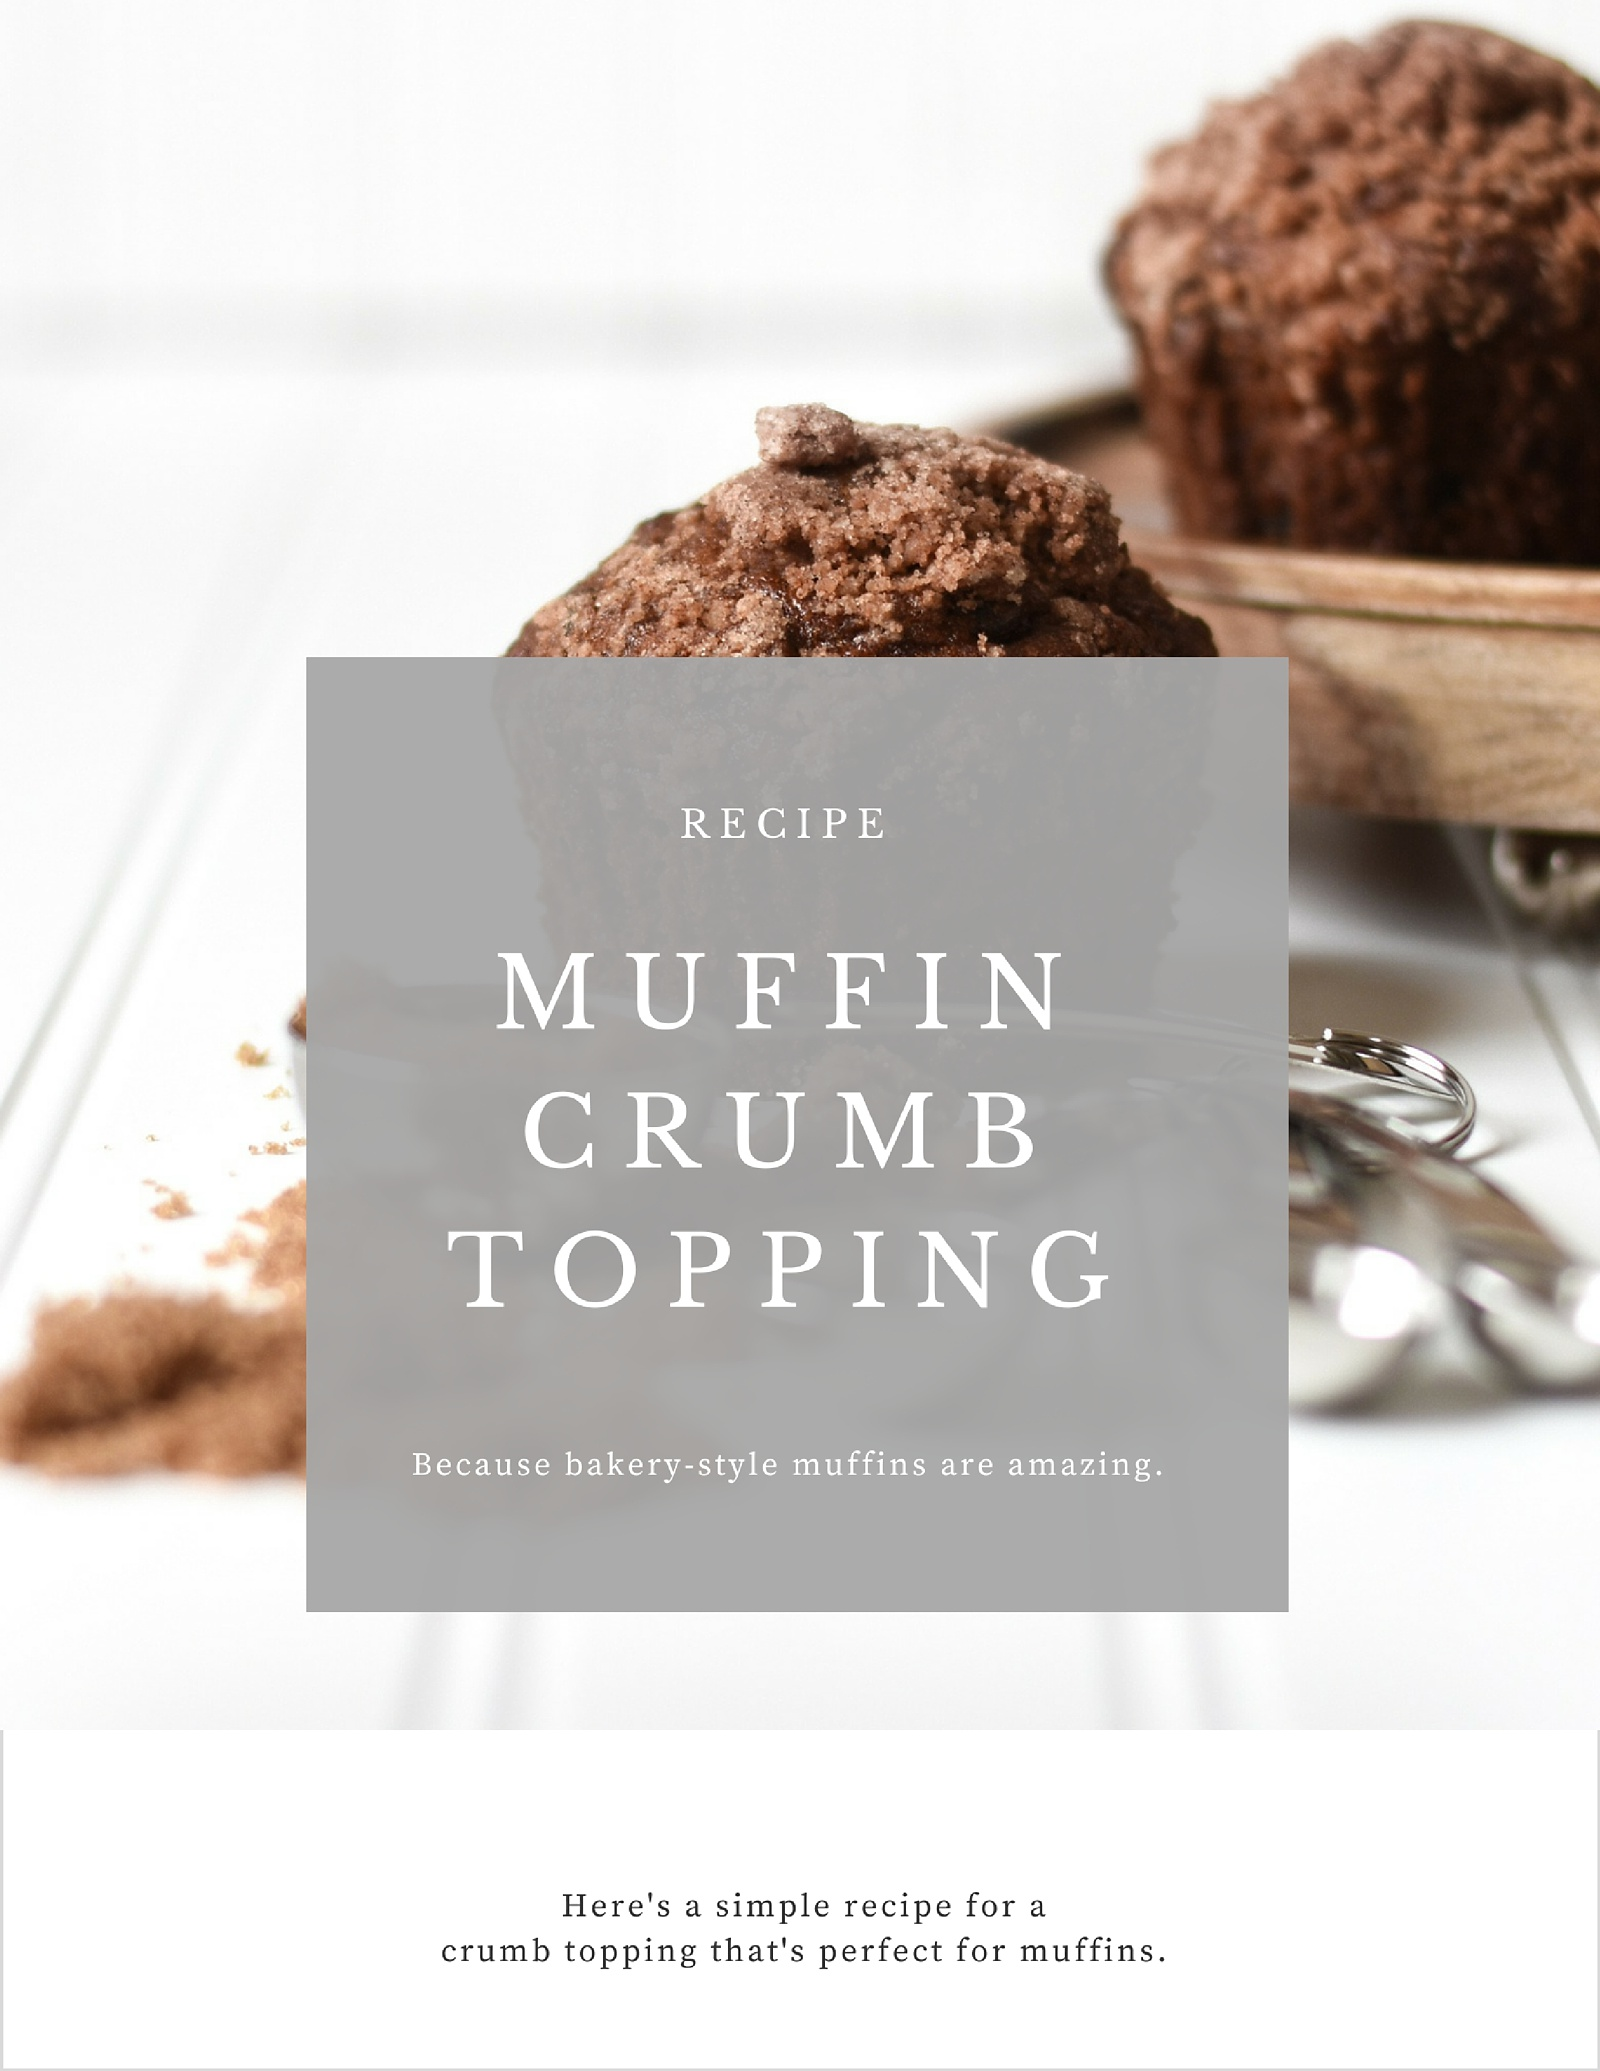 Recipe for a Muffin Crumb Topping